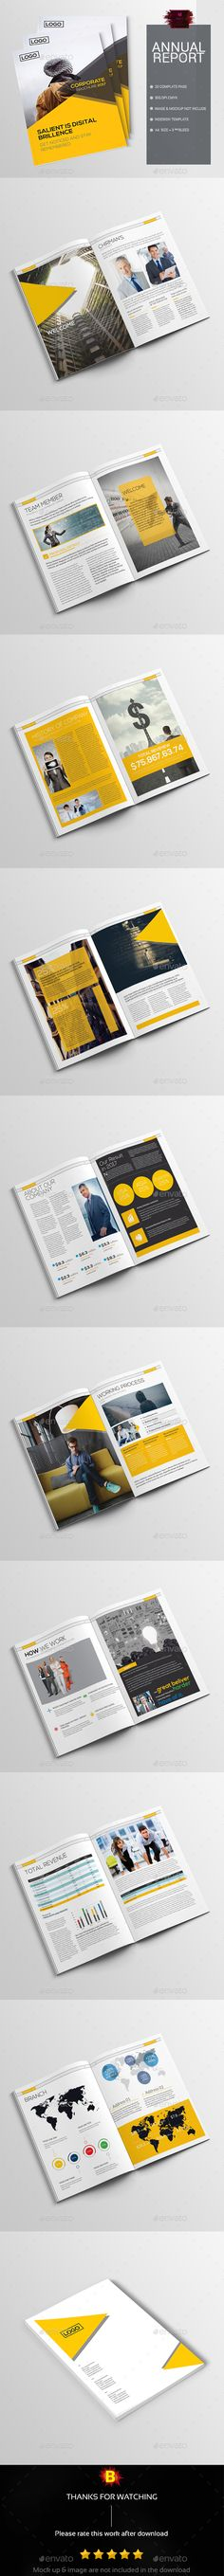 Annual Report Brochure Template #annualreport #annualbrochure - business annual report template